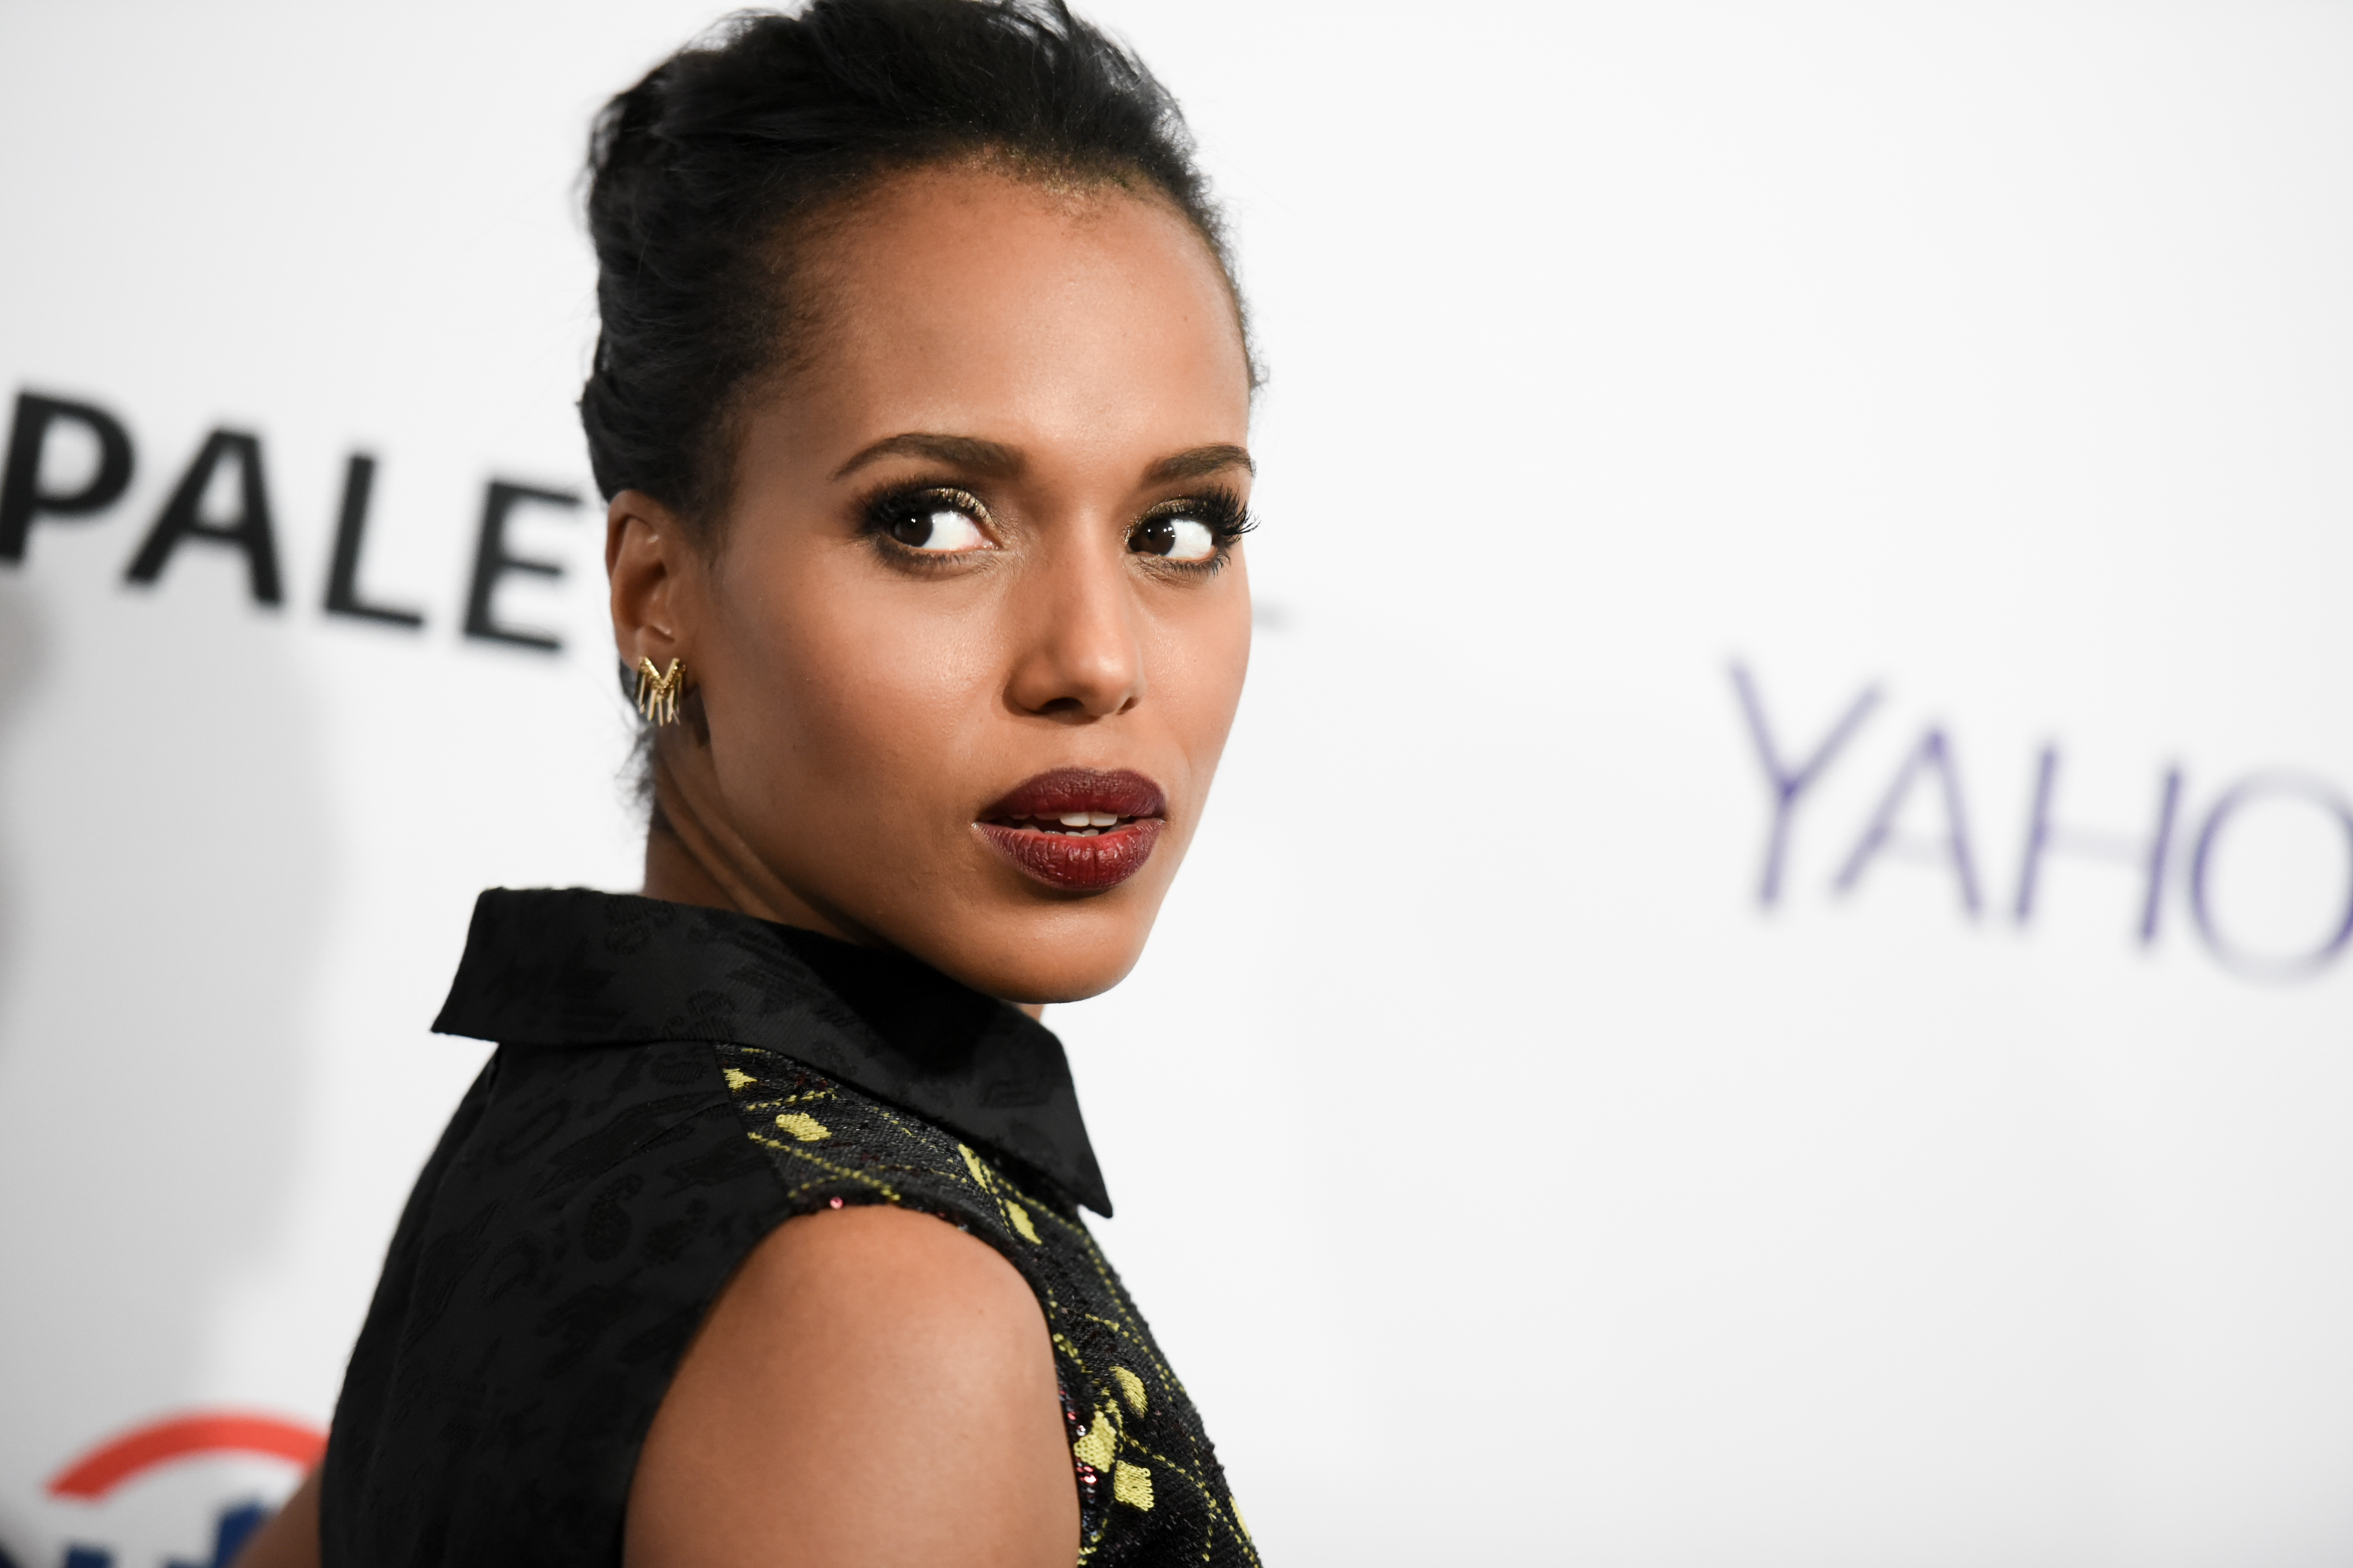 Kerry Washington arrives at the 32nd Annual Paleyfest :  Scandal  held at The Dolby Theatre on Sunday, March 8, 2015, in Los Angeles.